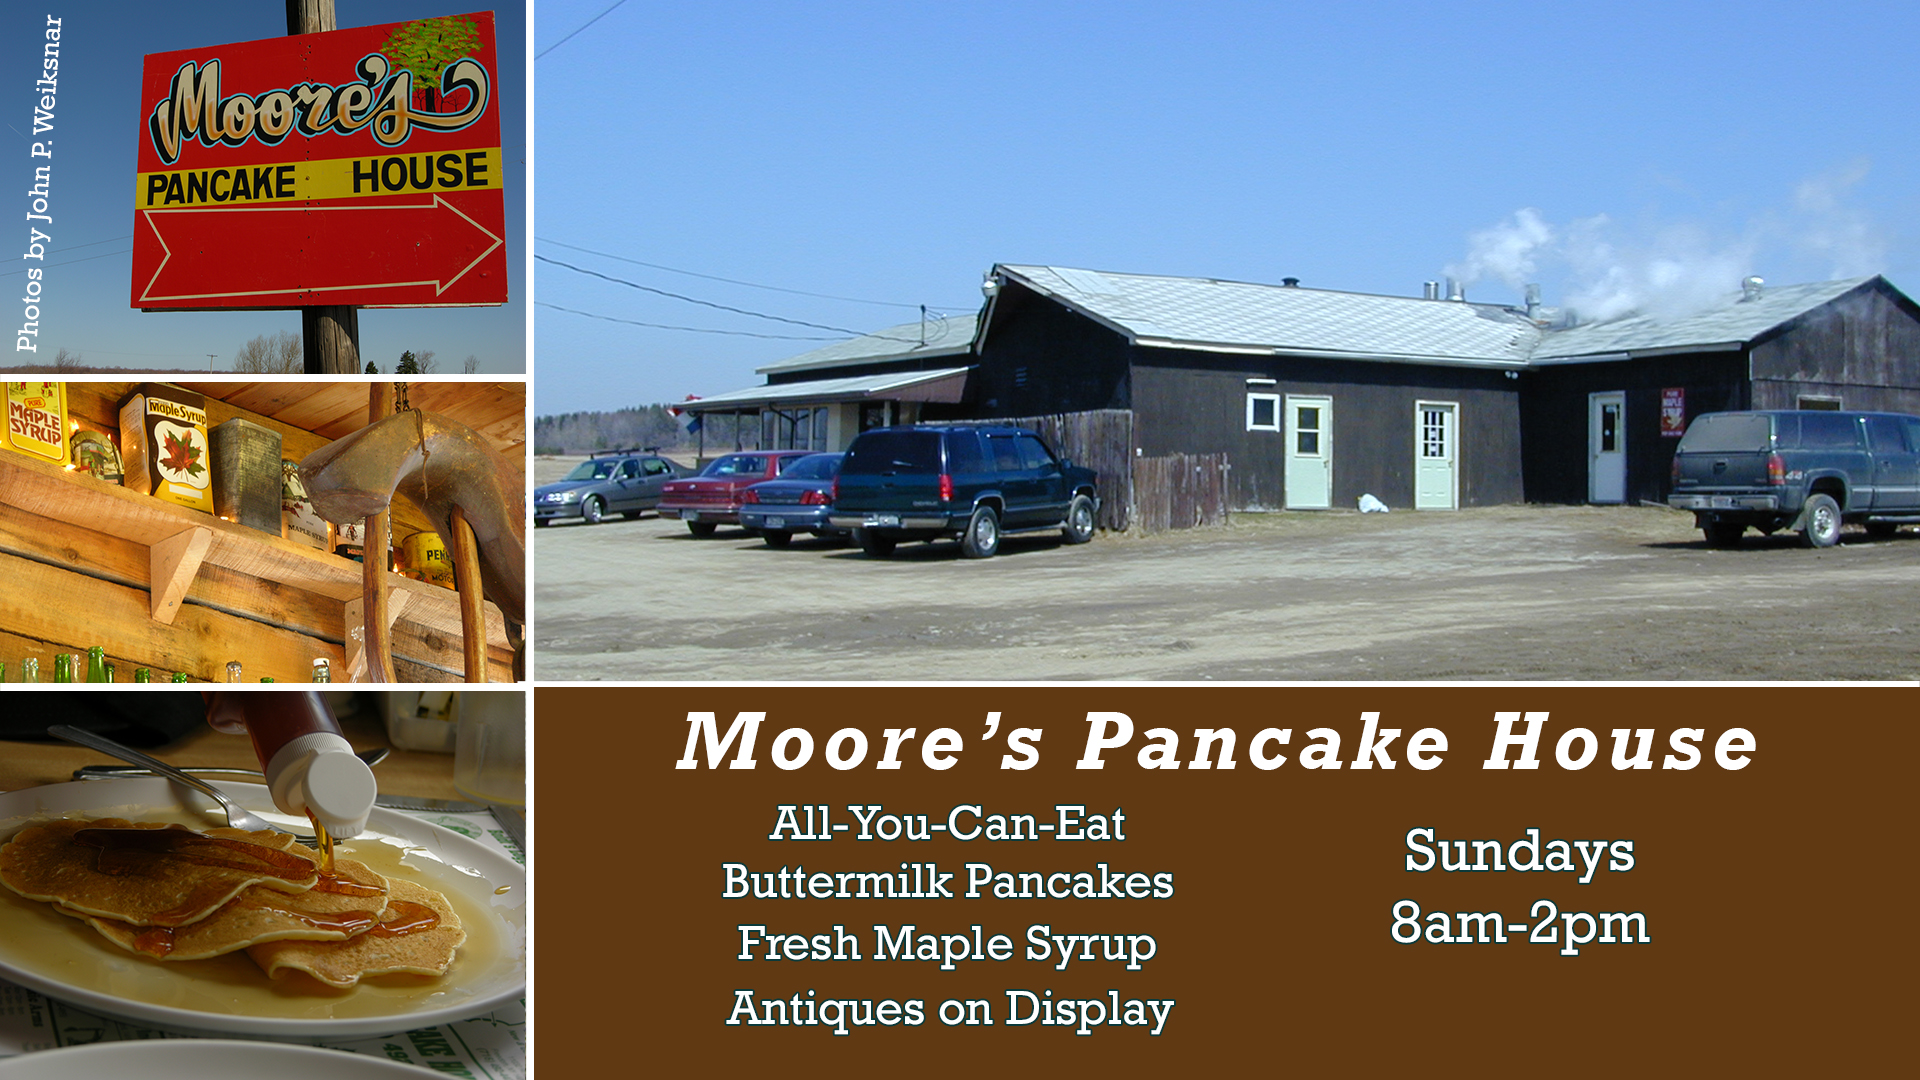 Moore's Pancake House open on Sundays